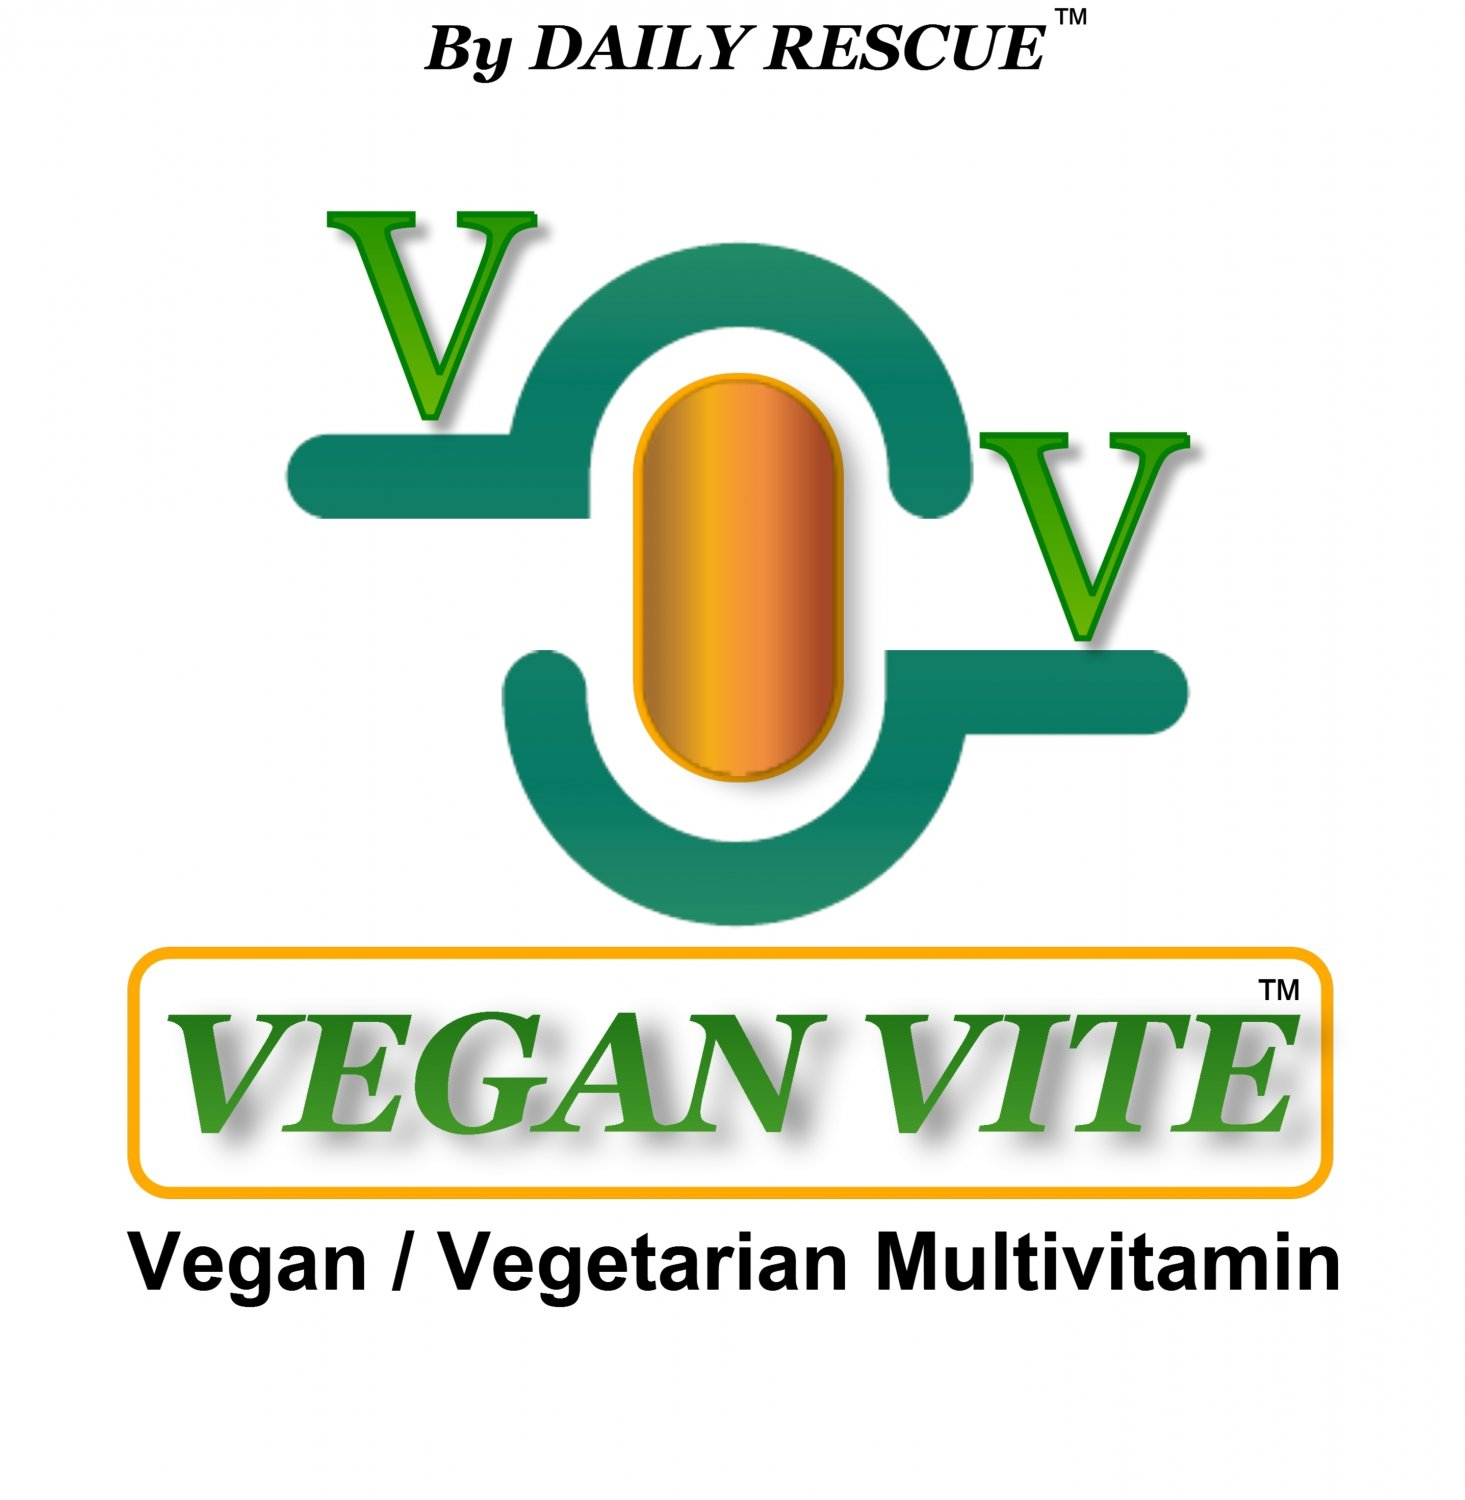 VEGAN VITE � Best / Advanced Vegetarian Multivitamin Supplement for Men & Women